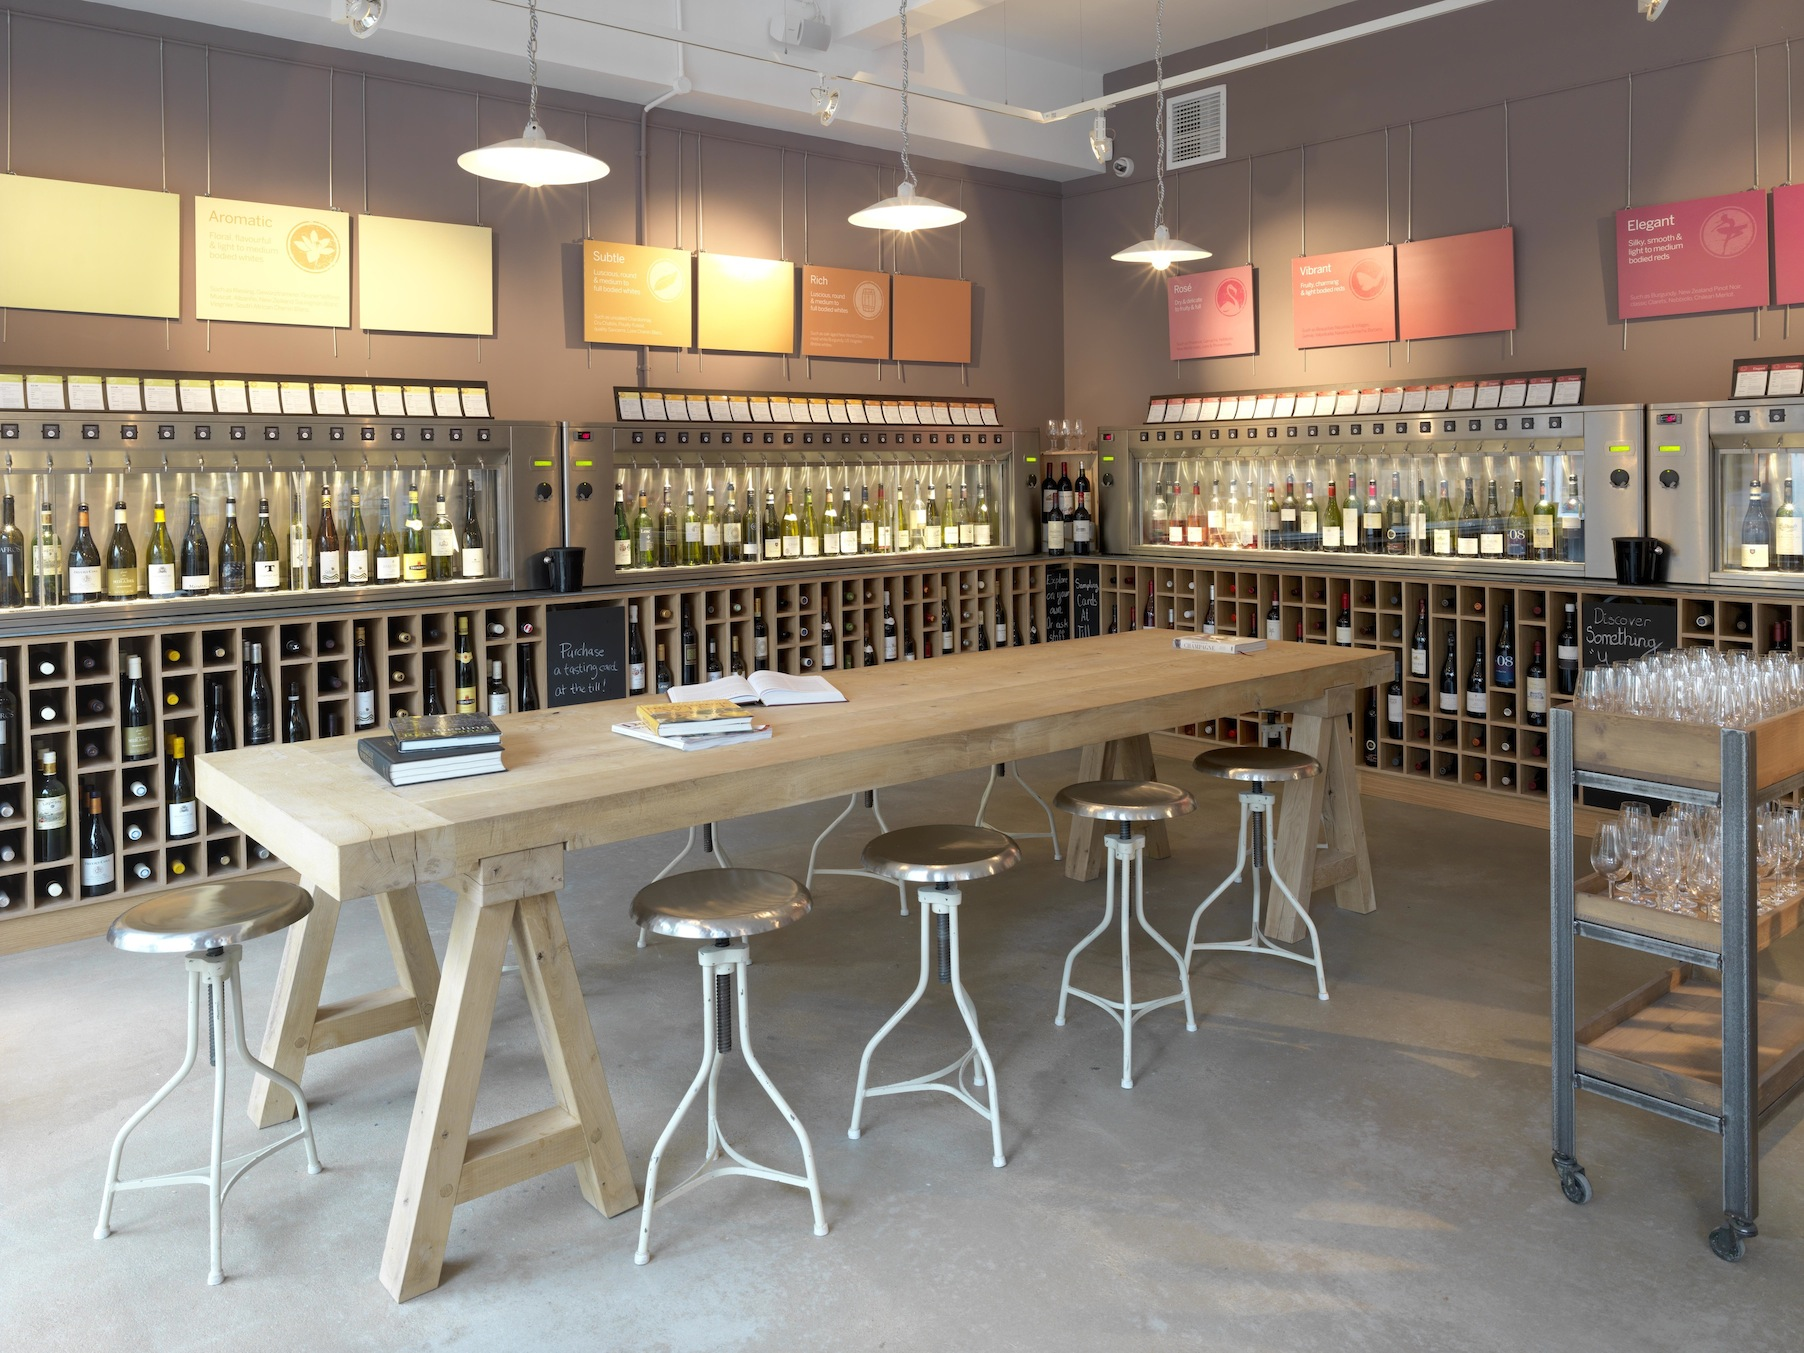 Our Wine Dispensing Systems - By The Glass